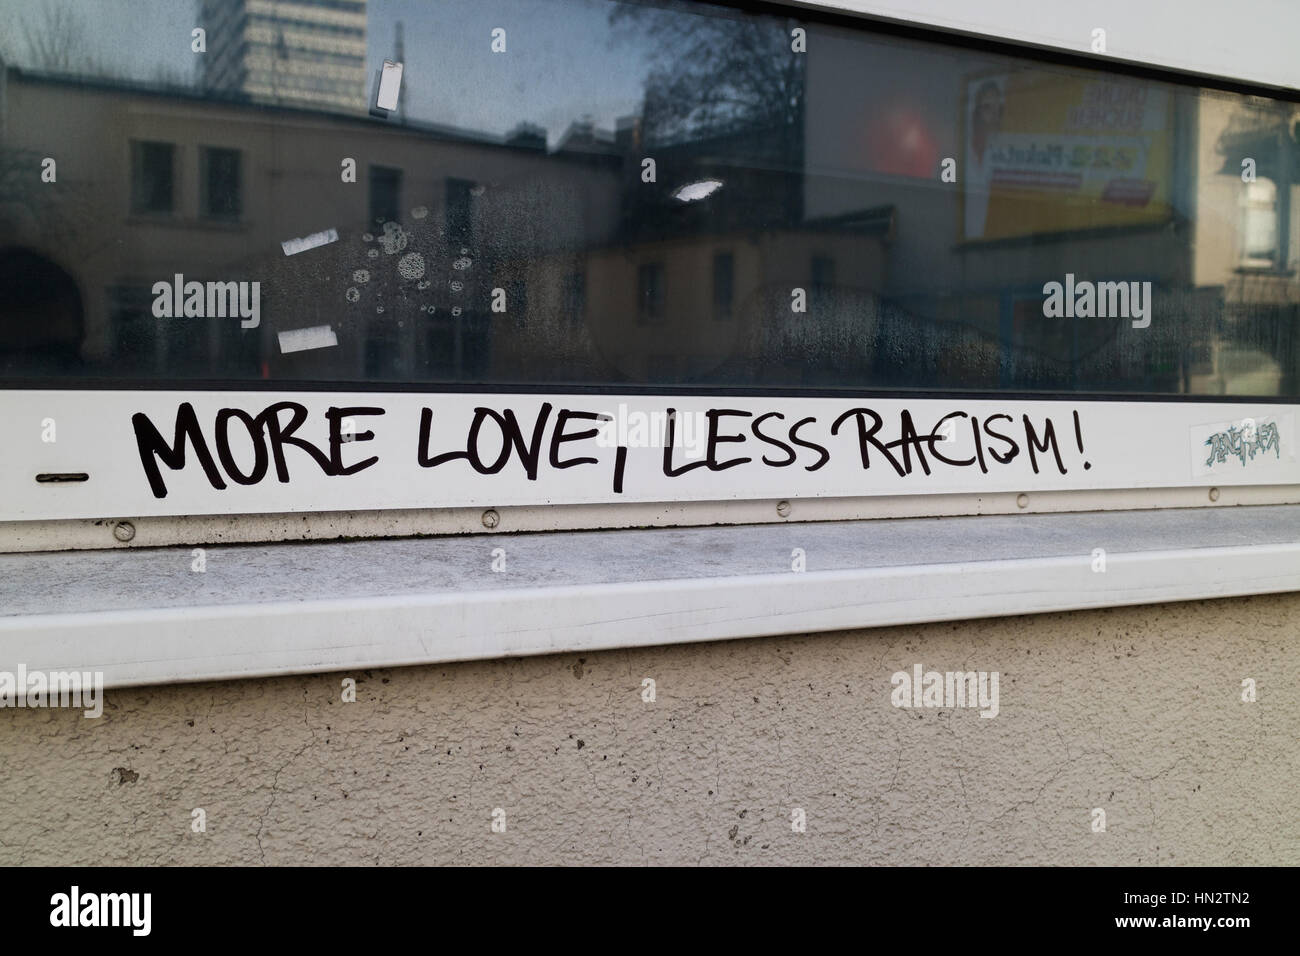 Graffiti on a building says More Love, Less Racism - Stock Image